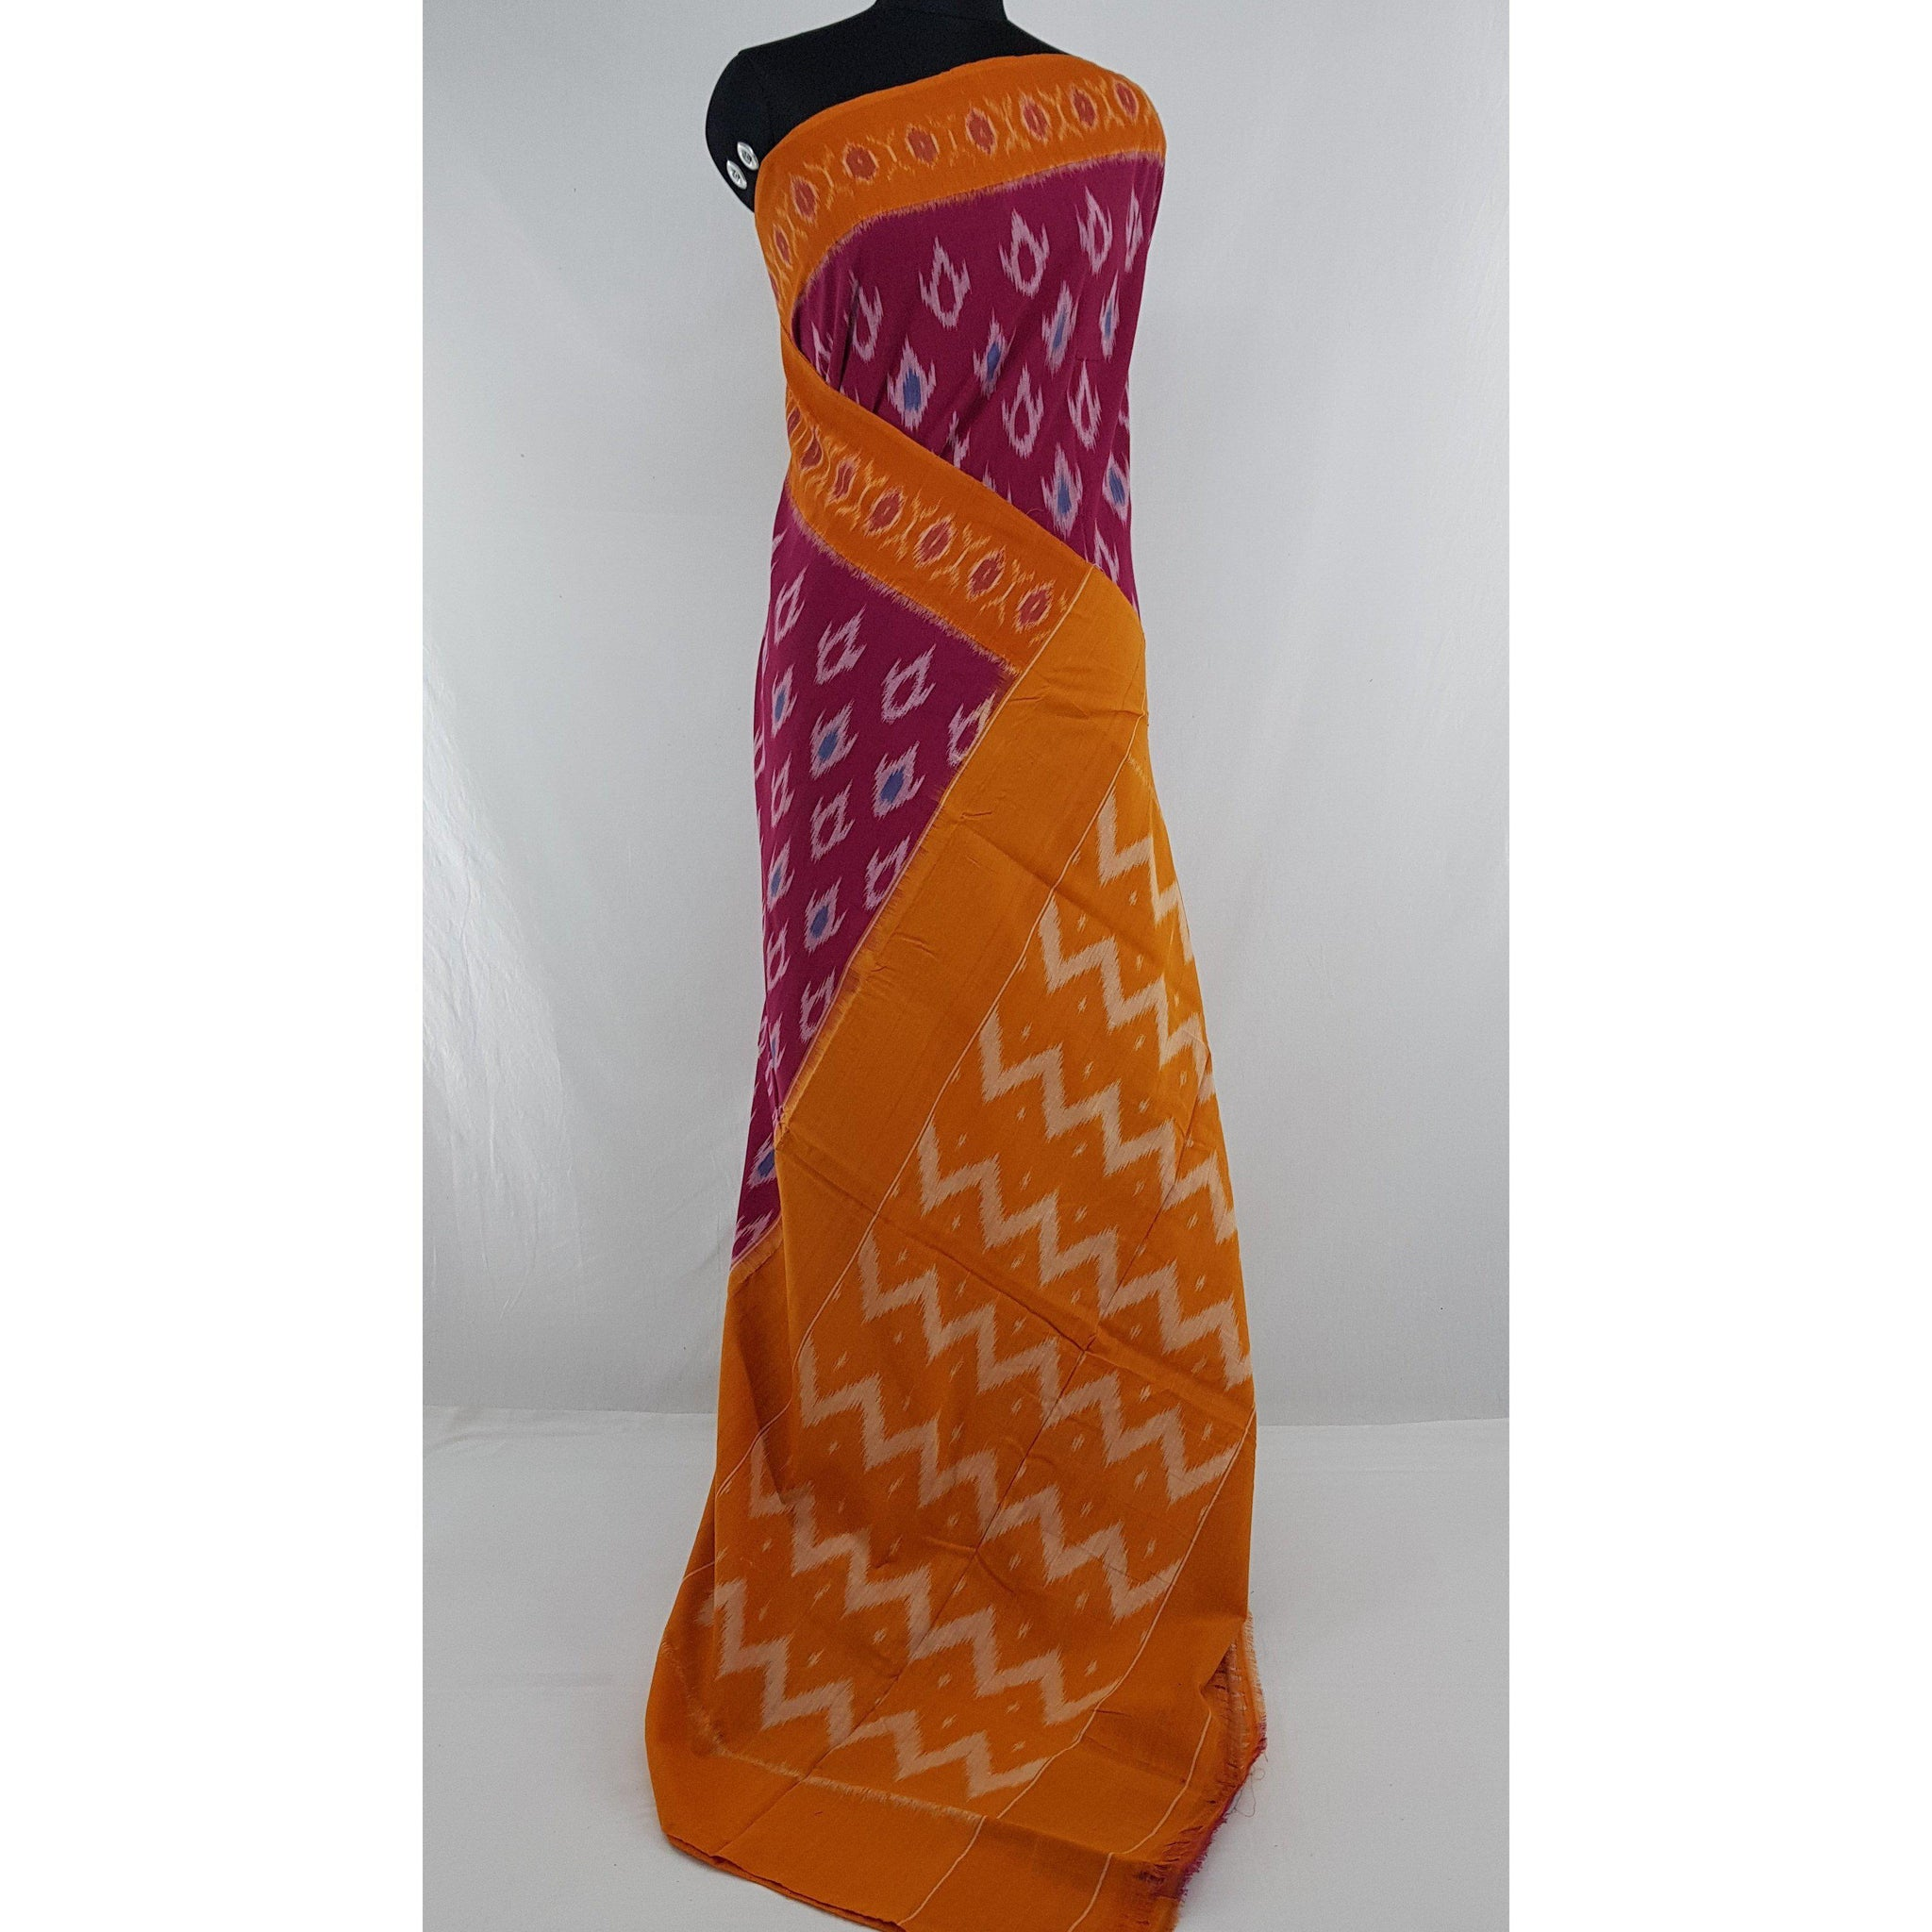 Handloom pochampally ikat mercerized cotton saree - Vinshika